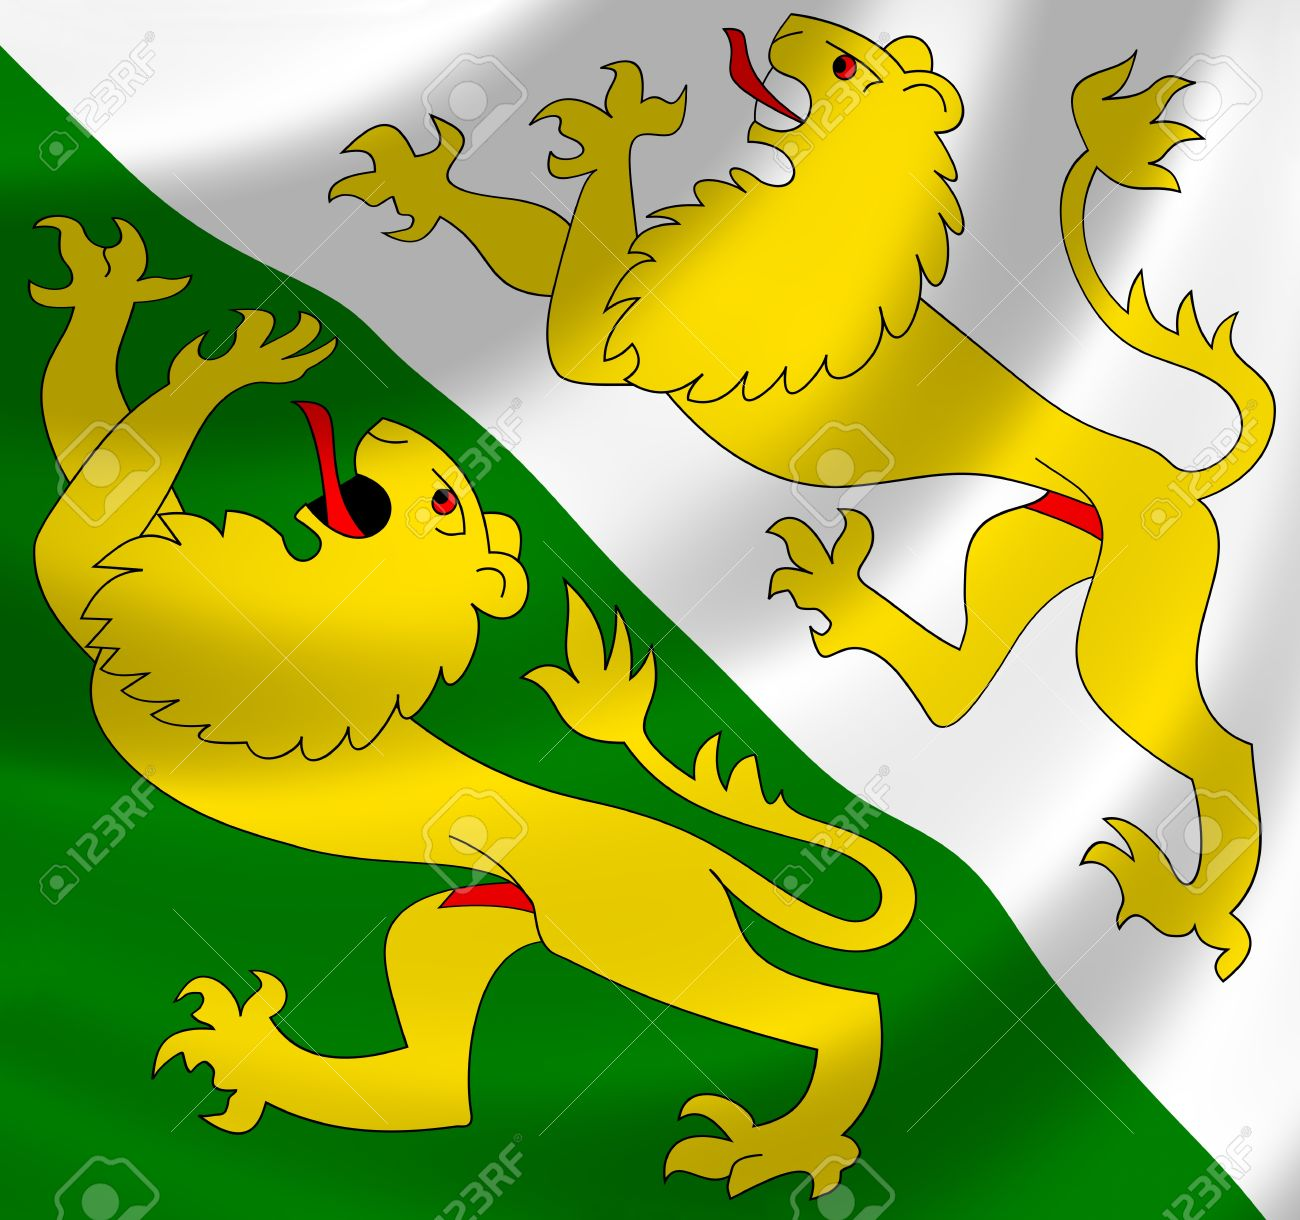 Swiss Canton Of Thurgau Flag Waving In The Wind Detail Stock Photo.